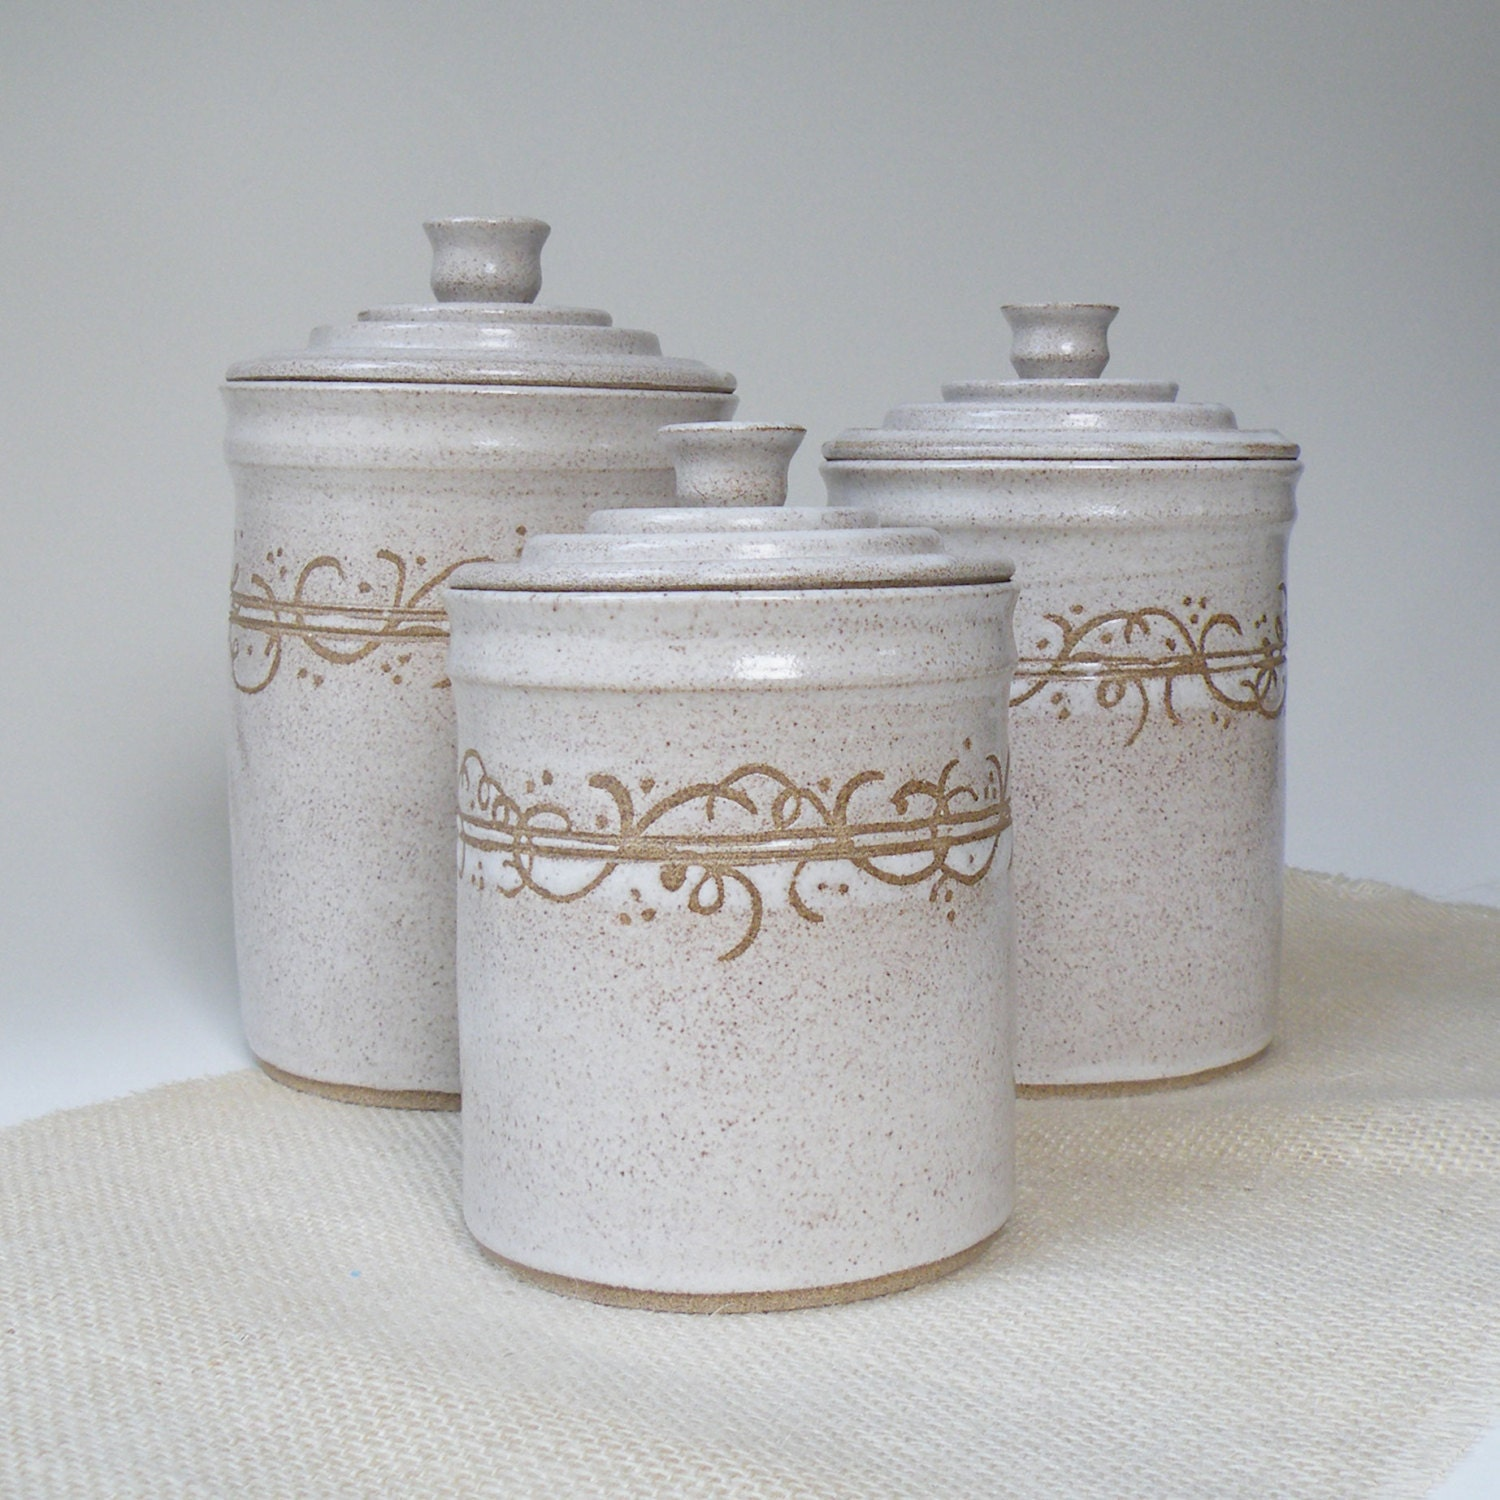 kitchen canisters ceramic sets kitchen collections white kitchen canisters www imgkid com the image kid